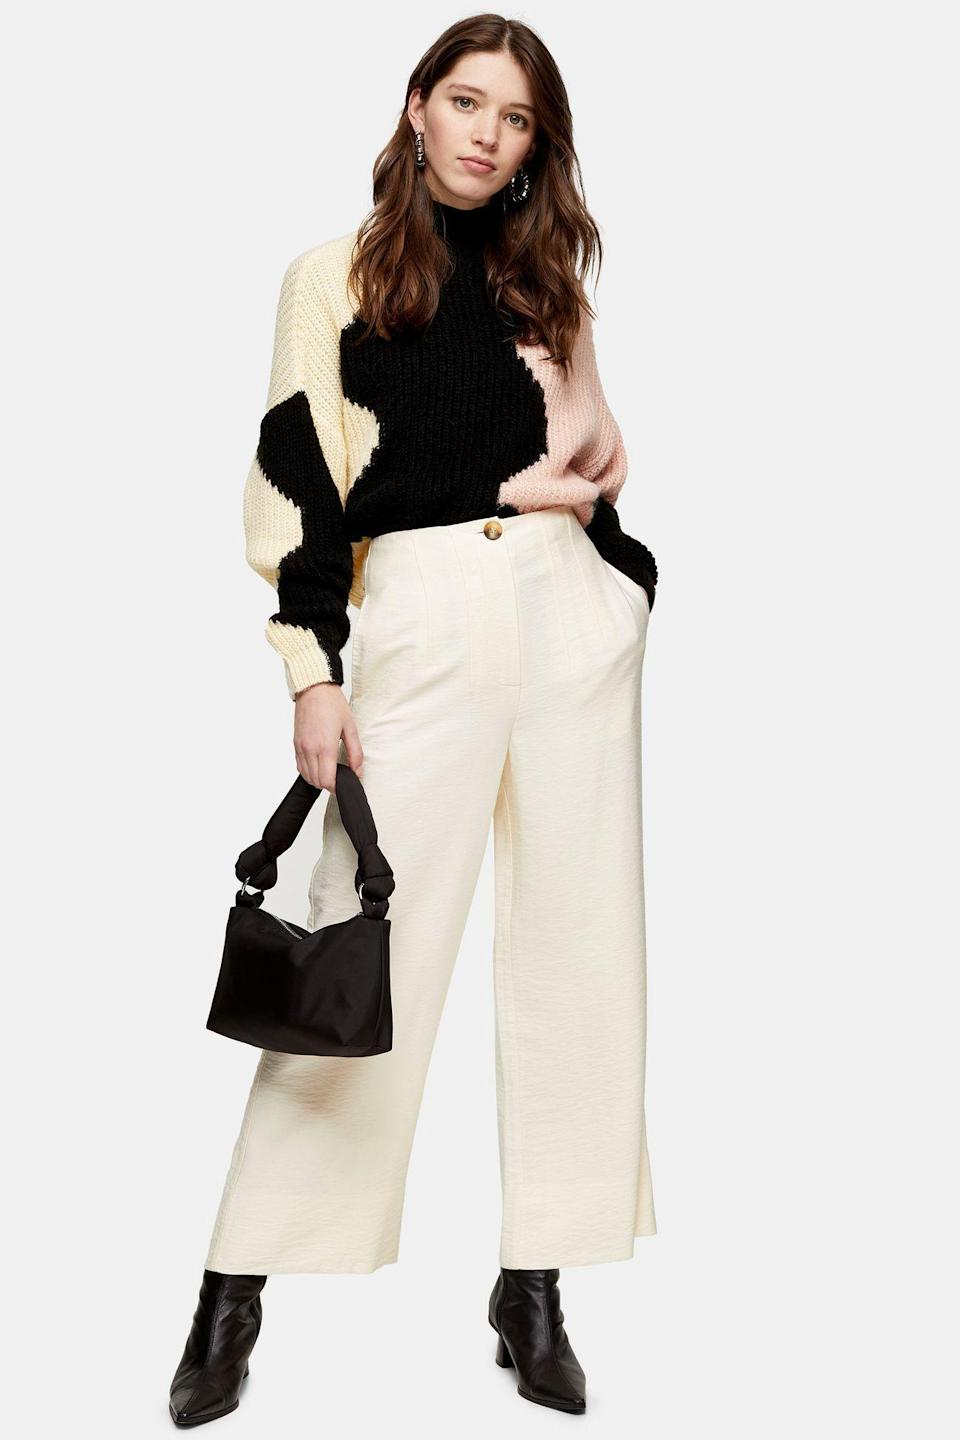 """<p><strong>Topshop</strong></p><p>topshop.com</p><p><strong>$55.00</strong></p><p><a href=""""https://go.redirectingat.com?id=74968X1596630&url=https%3A%2F%2Fus.topshop.com%2Fen%2Ftsus%2Fproduct%2Fecru-stitch-wide-leg-pants-9837733&sref=https%3A%2F%2Fwww.cosmopolitan.com%2Fstyle-beauty%2Ffashion%2Fg10327302%2Fcute-fall-outfits%2F"""" rel=""""nofollow noopener"""" target=""""_blank"""" data-ylk=""""slk:Shop Now"""" class=""""link rapid-noclick-resp"""">Shop Now</a></p><p>Wide-leg pants will never not be in, so I think you def need these! The cream hue will actually go with so much more than you think, like this fun color-block sweater.</p>"""